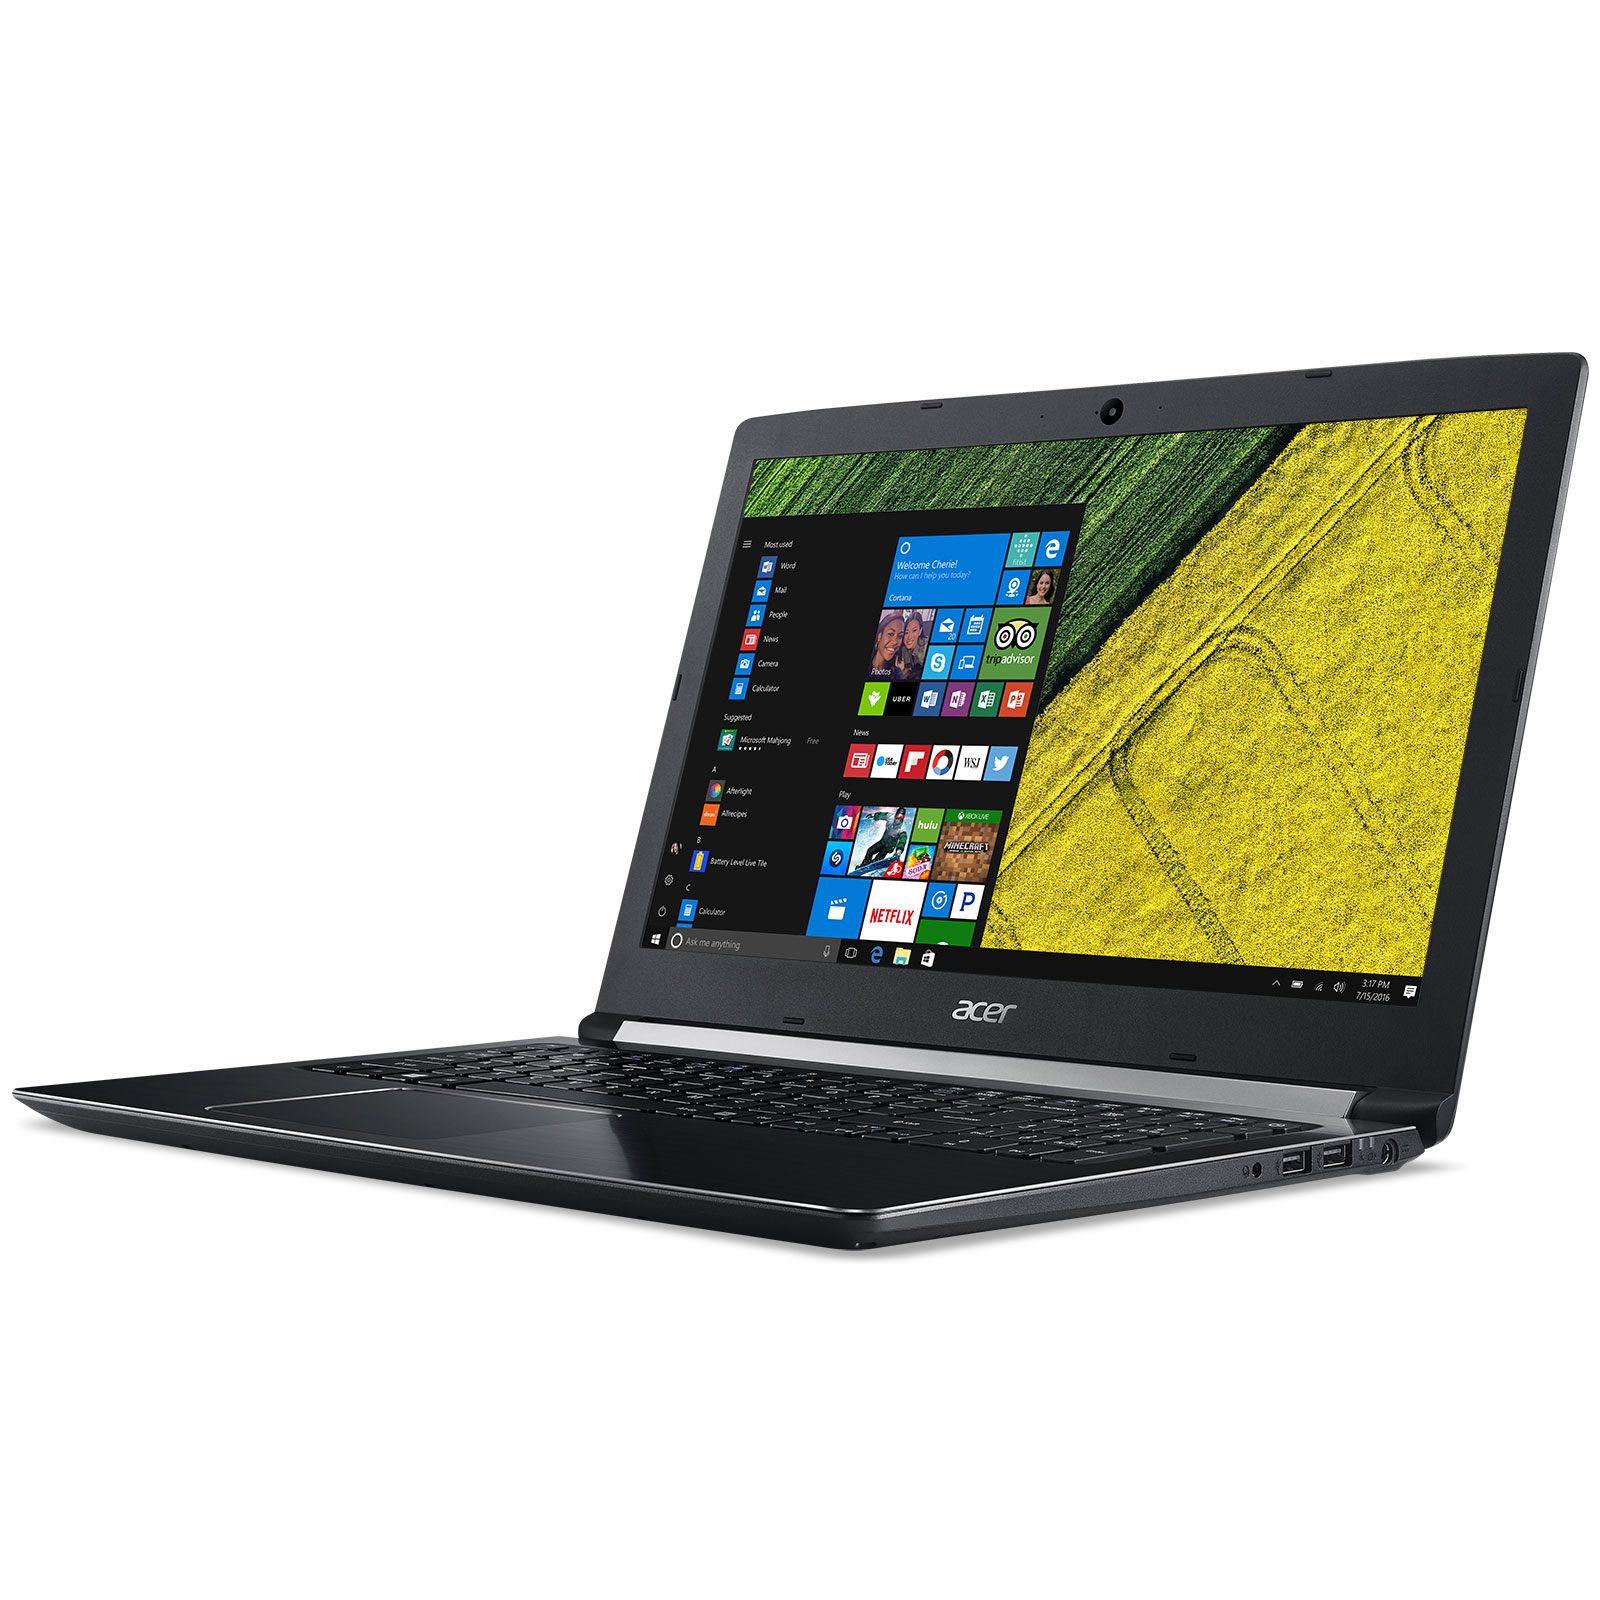 Ordinateur Portable Acer Aspire A515-51G-56W5, i5, 1To, 4Go DDR4, 15.6 pouces LED,informatique Reunion 974, Futur Réunion informatique